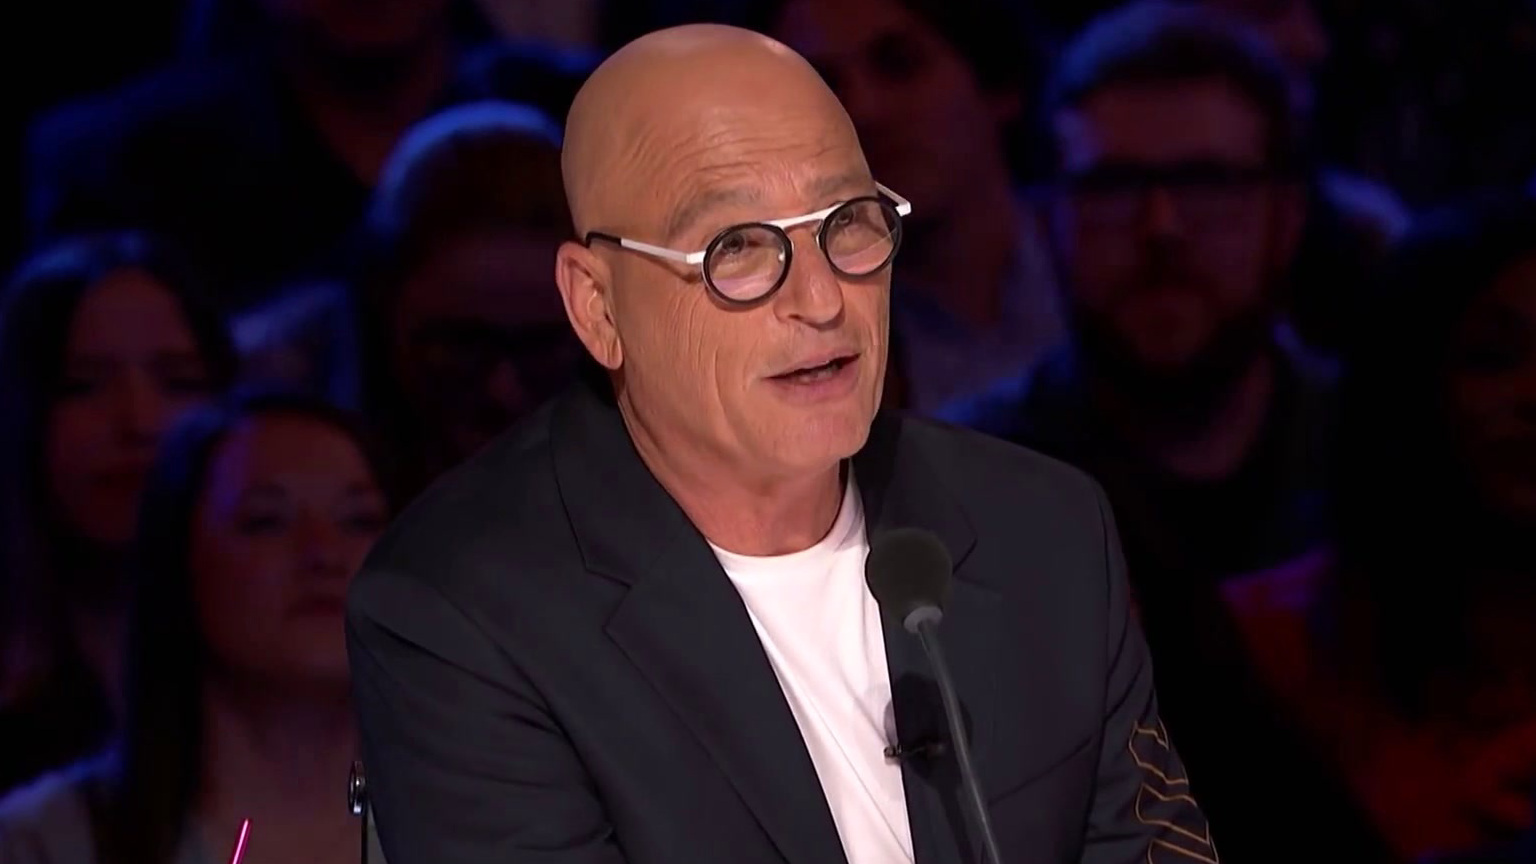 America's Got Talent: Nolan Neal Performs Moving Original Song, Lost